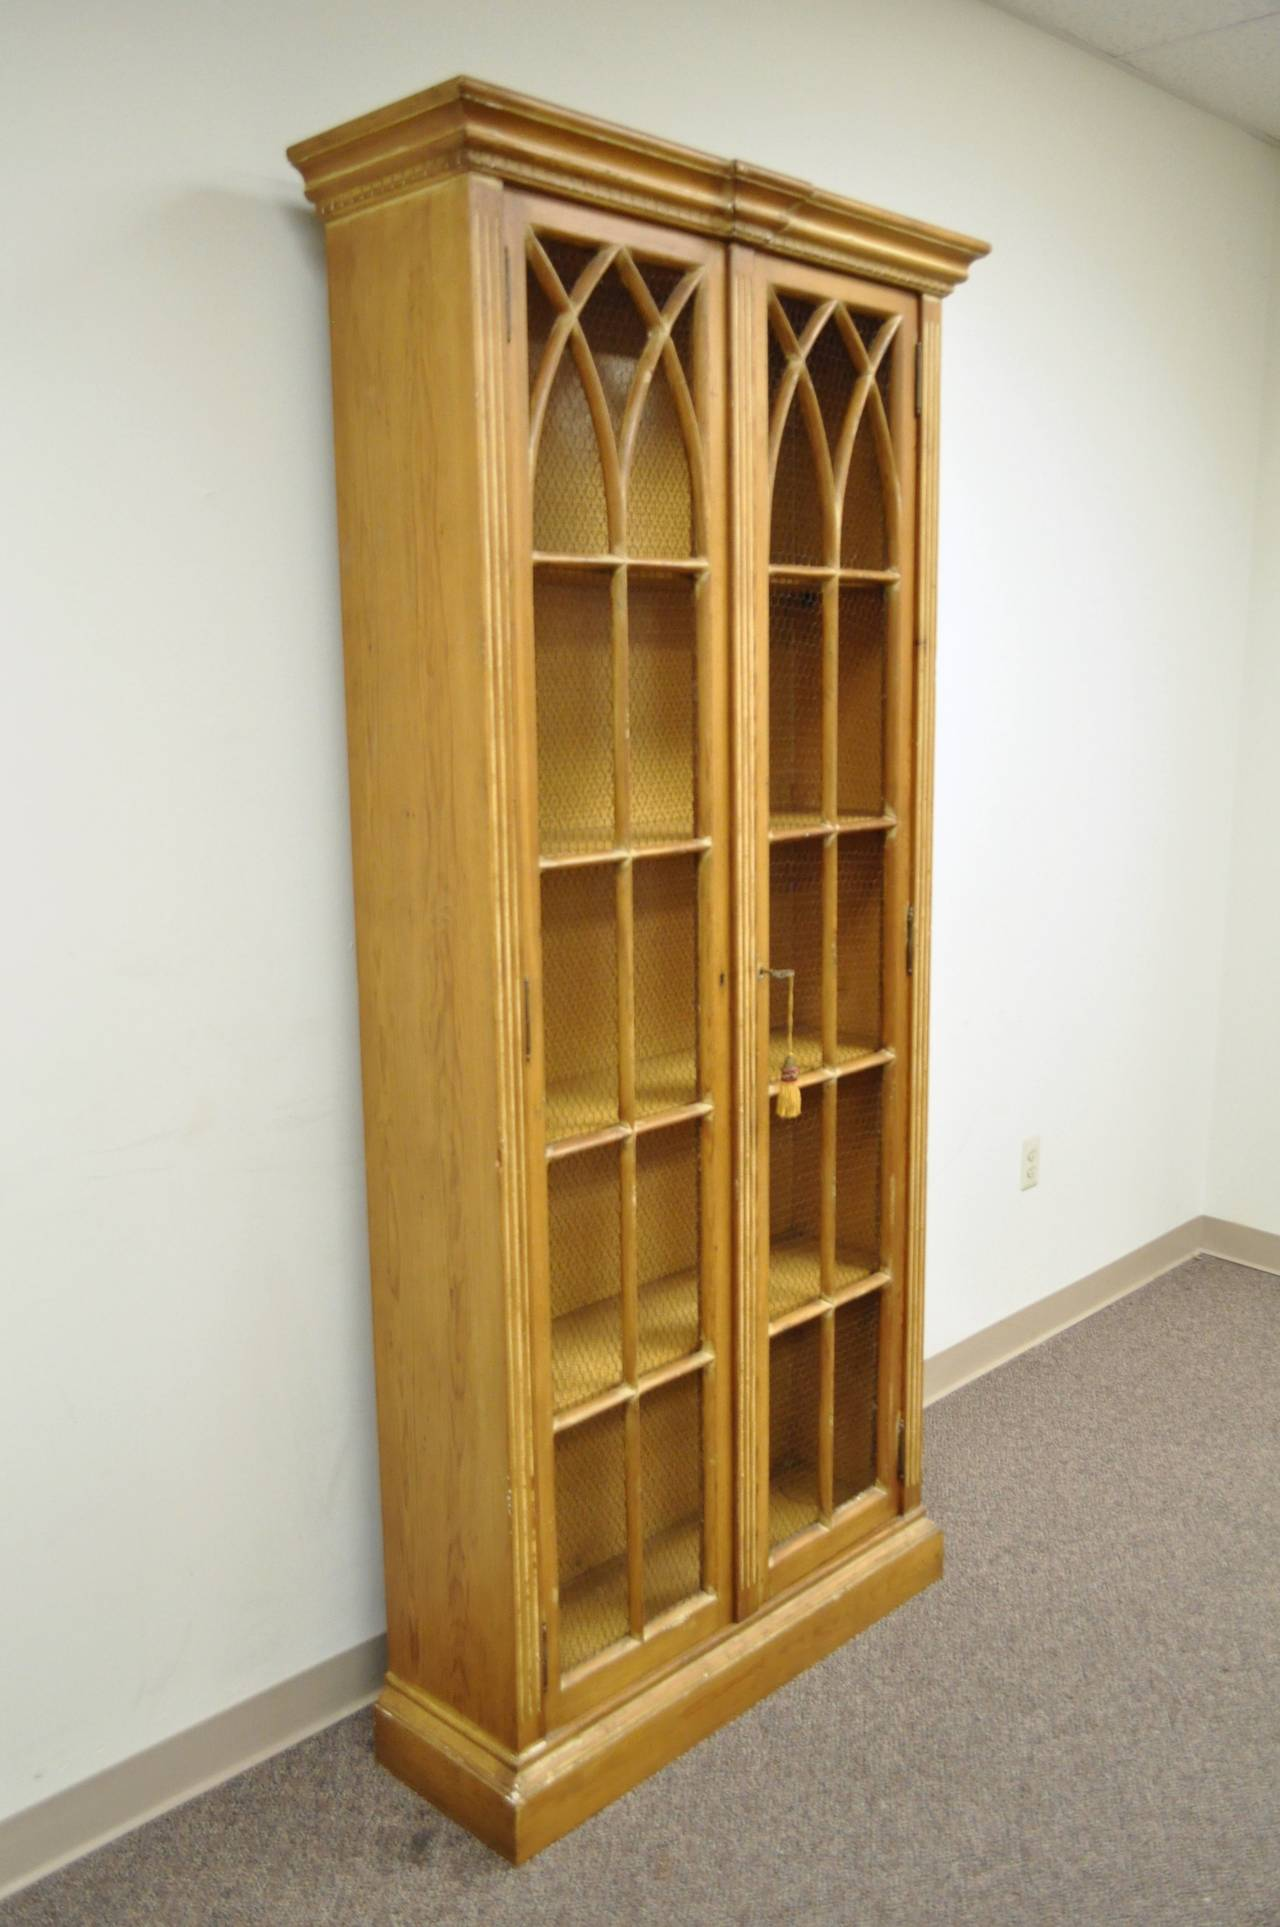 Antiqued And Distress Finished Italian Bookcase In The Mission Or Gothic Style At 1stdibs